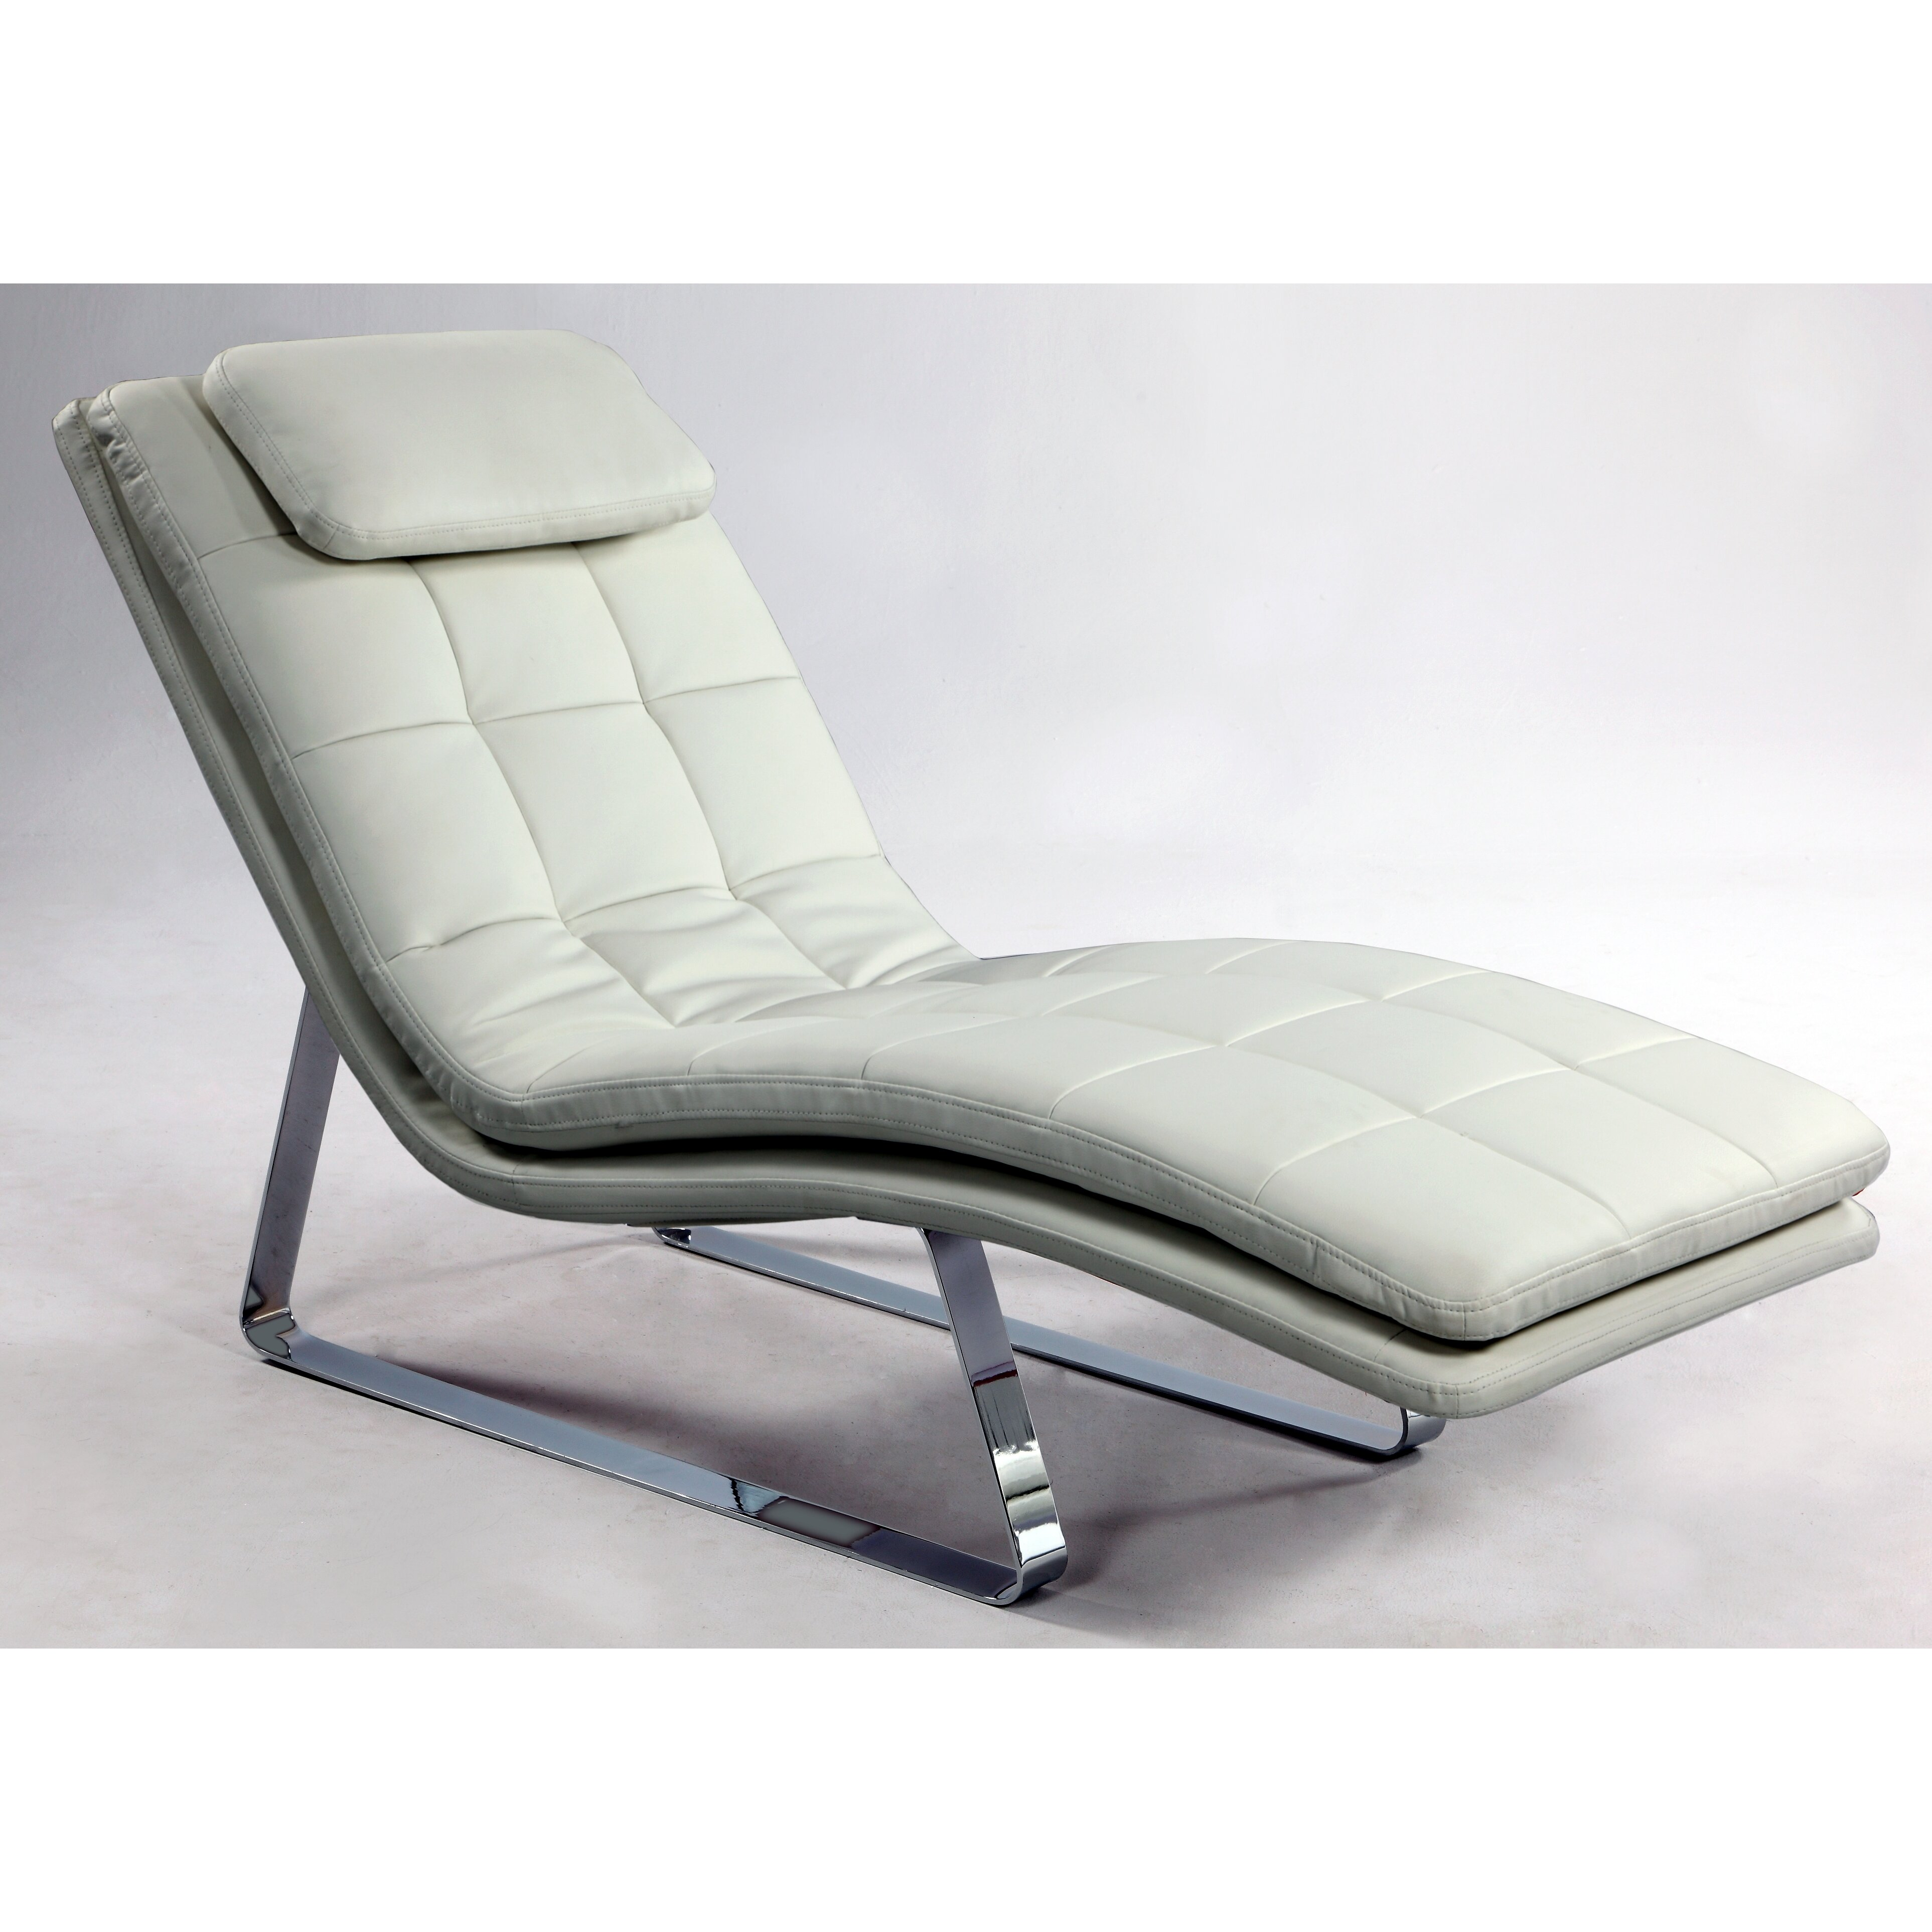 Chintaly corvette chaise lounge reviews wayfair for Bathroom chaise lounge